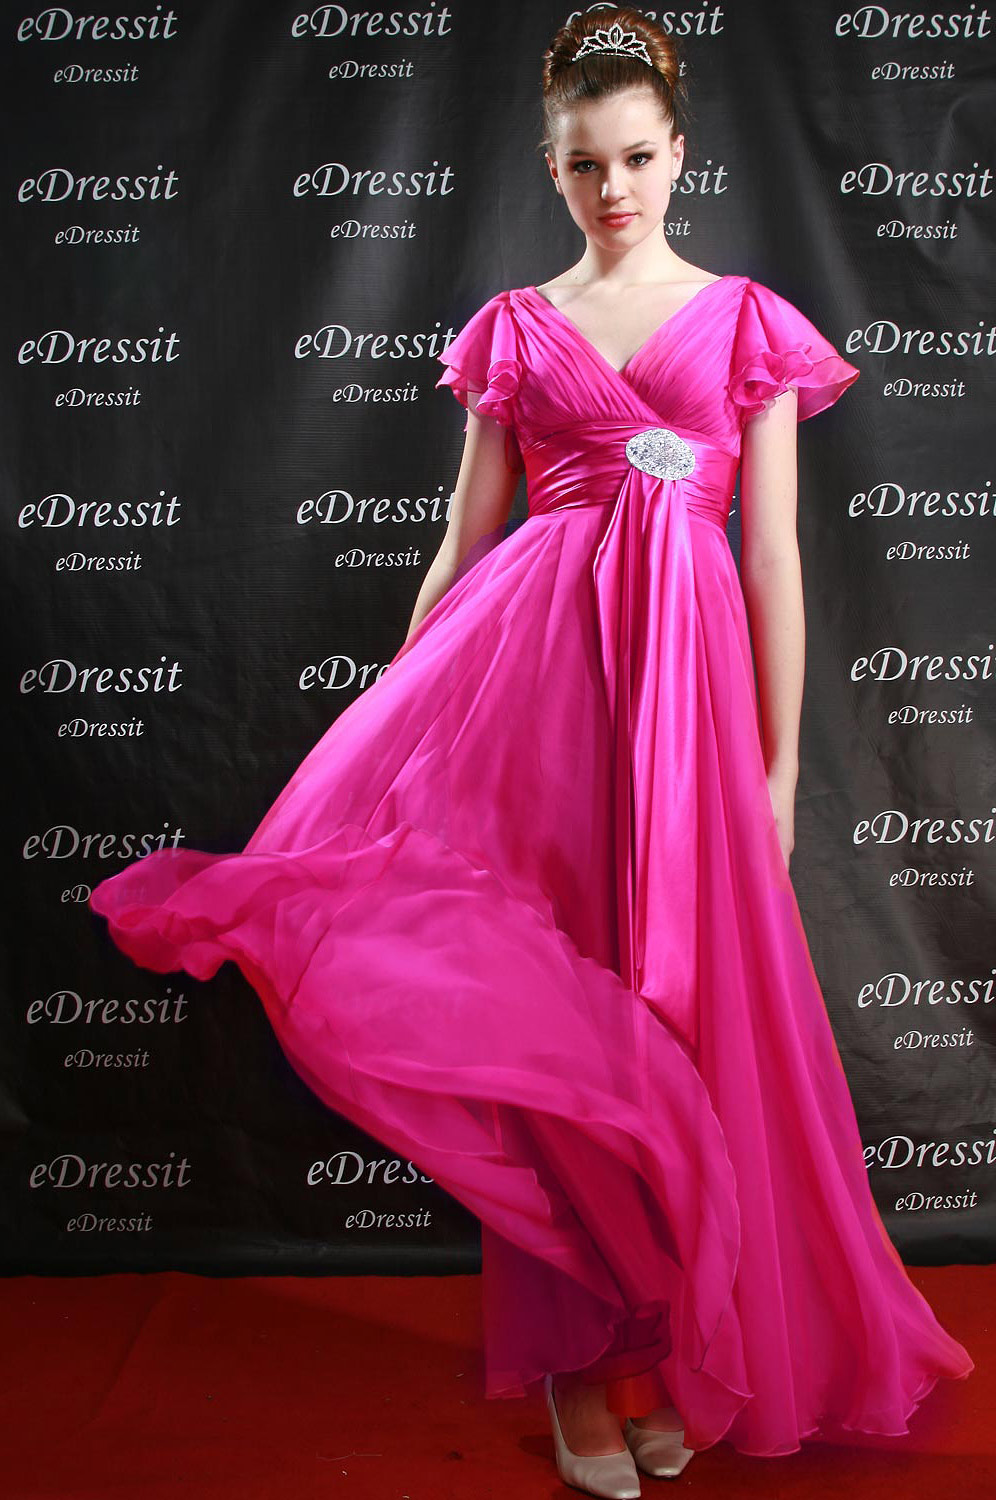 ON SALE ! eDressit Evening Dress (00083112s)